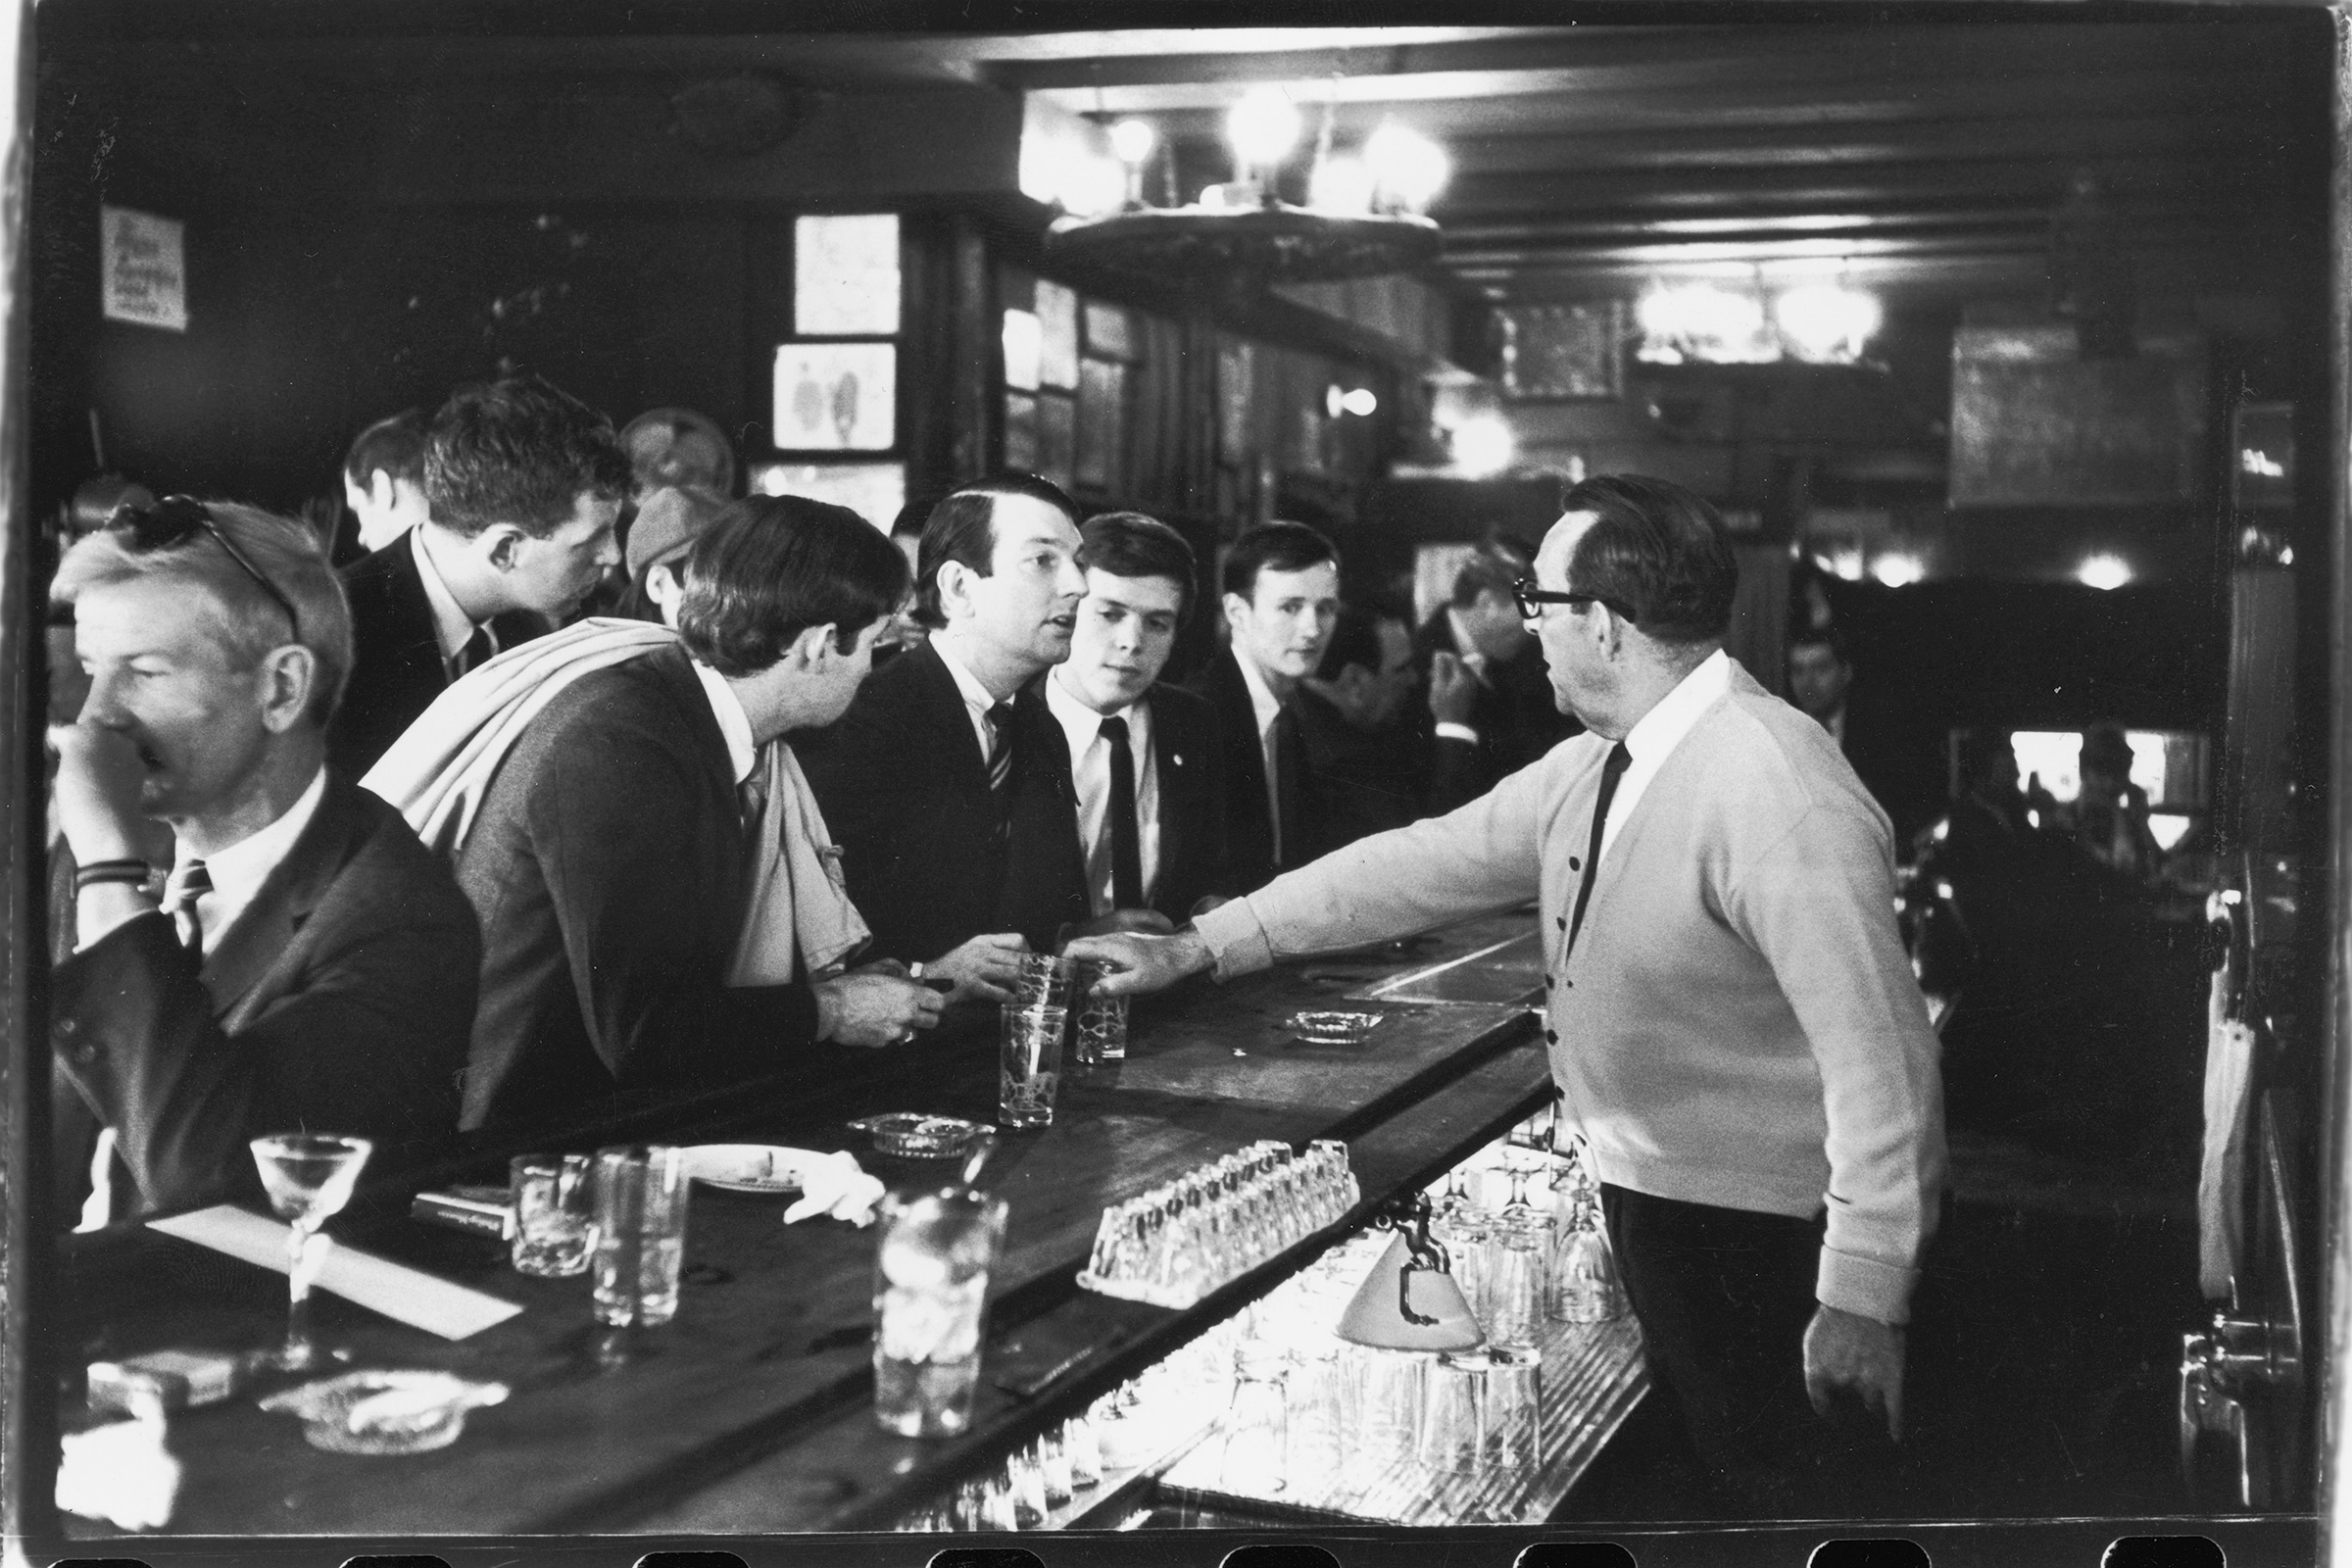 After pouring their drinks, a bartender in Julius's Bar refuses to serve (from left to right) John Timmins, Dick Leitsch, Craig Rodwell, and Randy Wicker, members of the Mattachine Society, who were protesting New York liquor laws that prevented serving gay customers, in New York, on April 21, 1966.